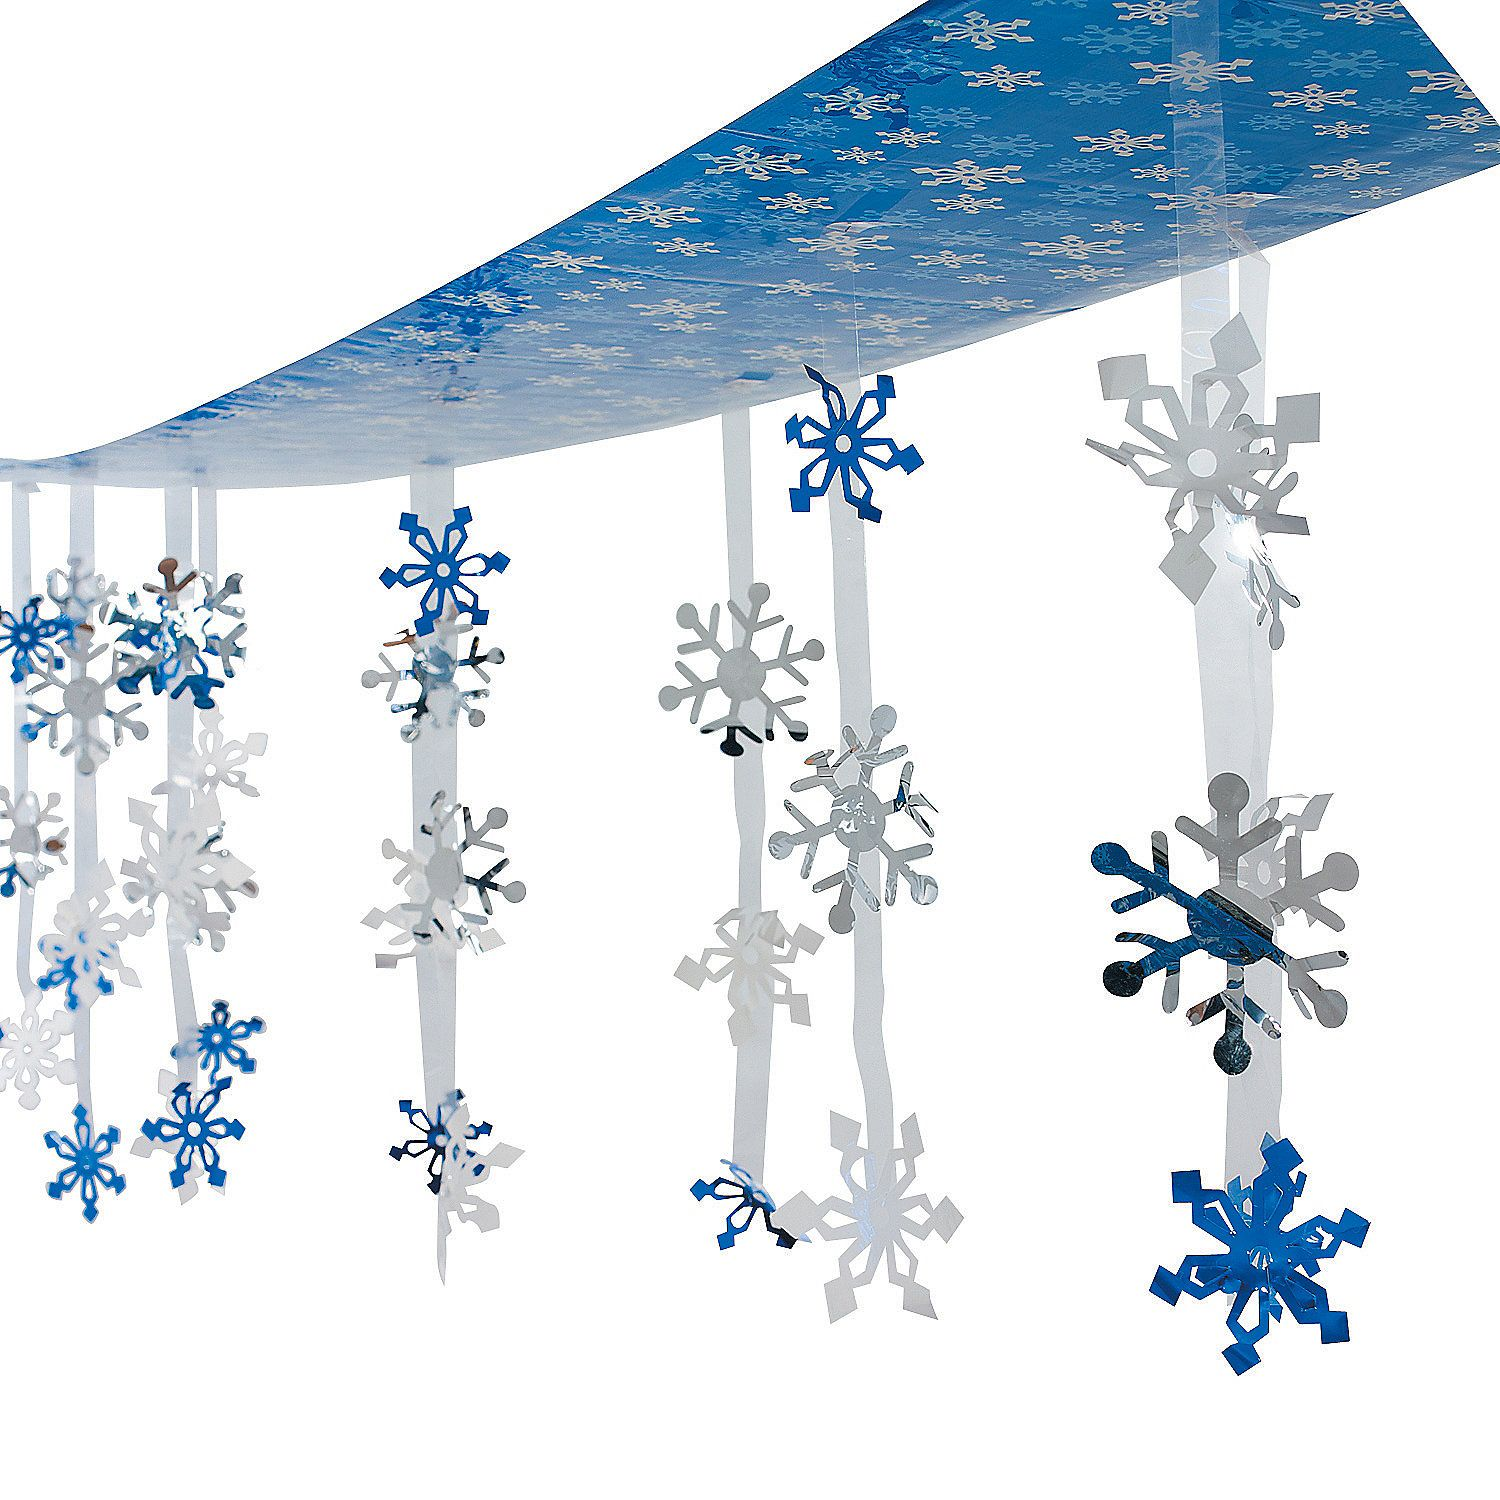 Snowflake ceiling decoration ceilings decoration and for Christmas ceiling decorations